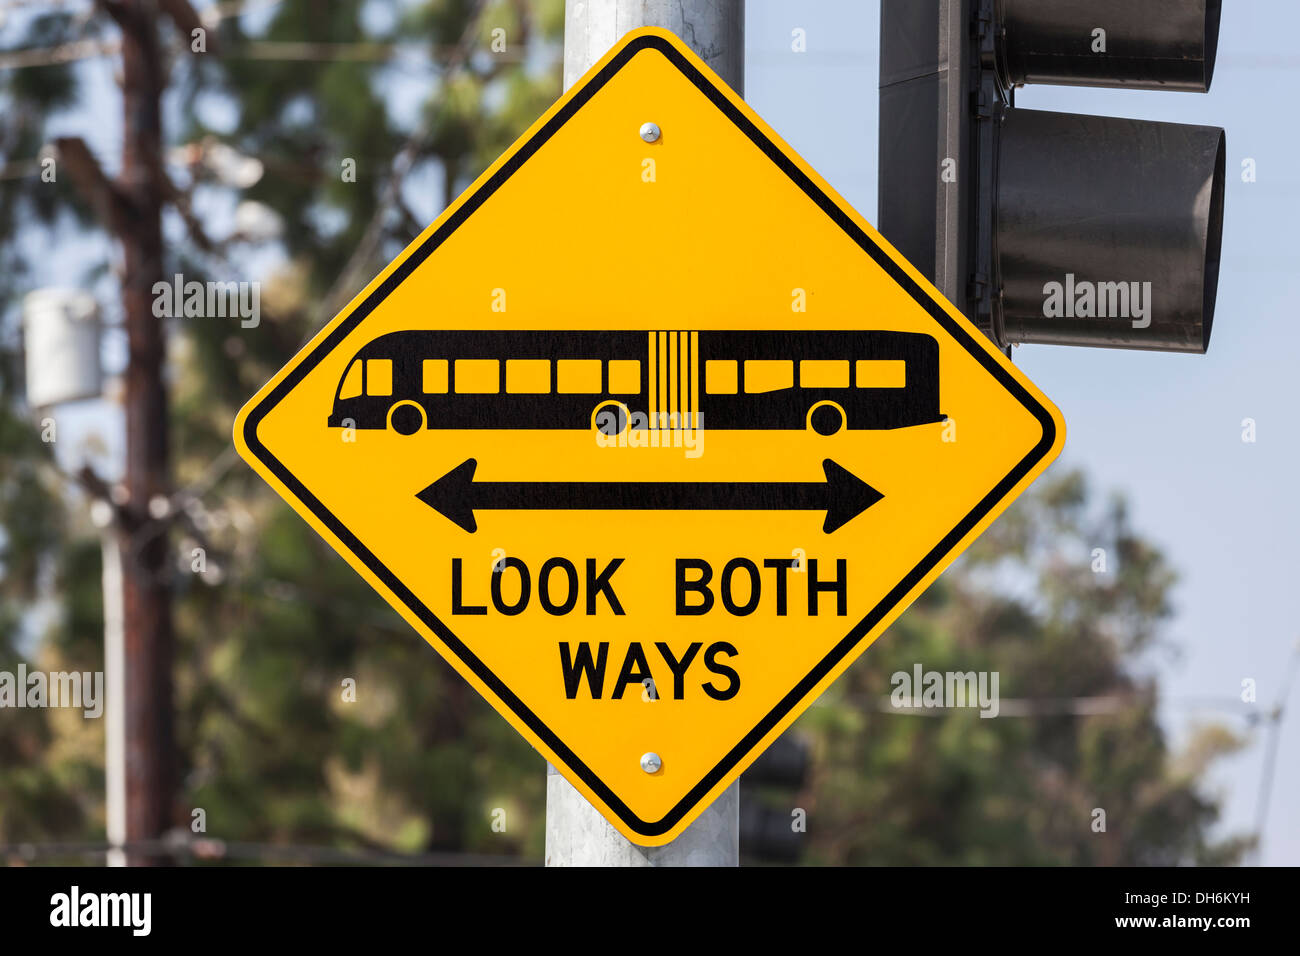 Look both ways bus and tram warning sign. - Stock Image